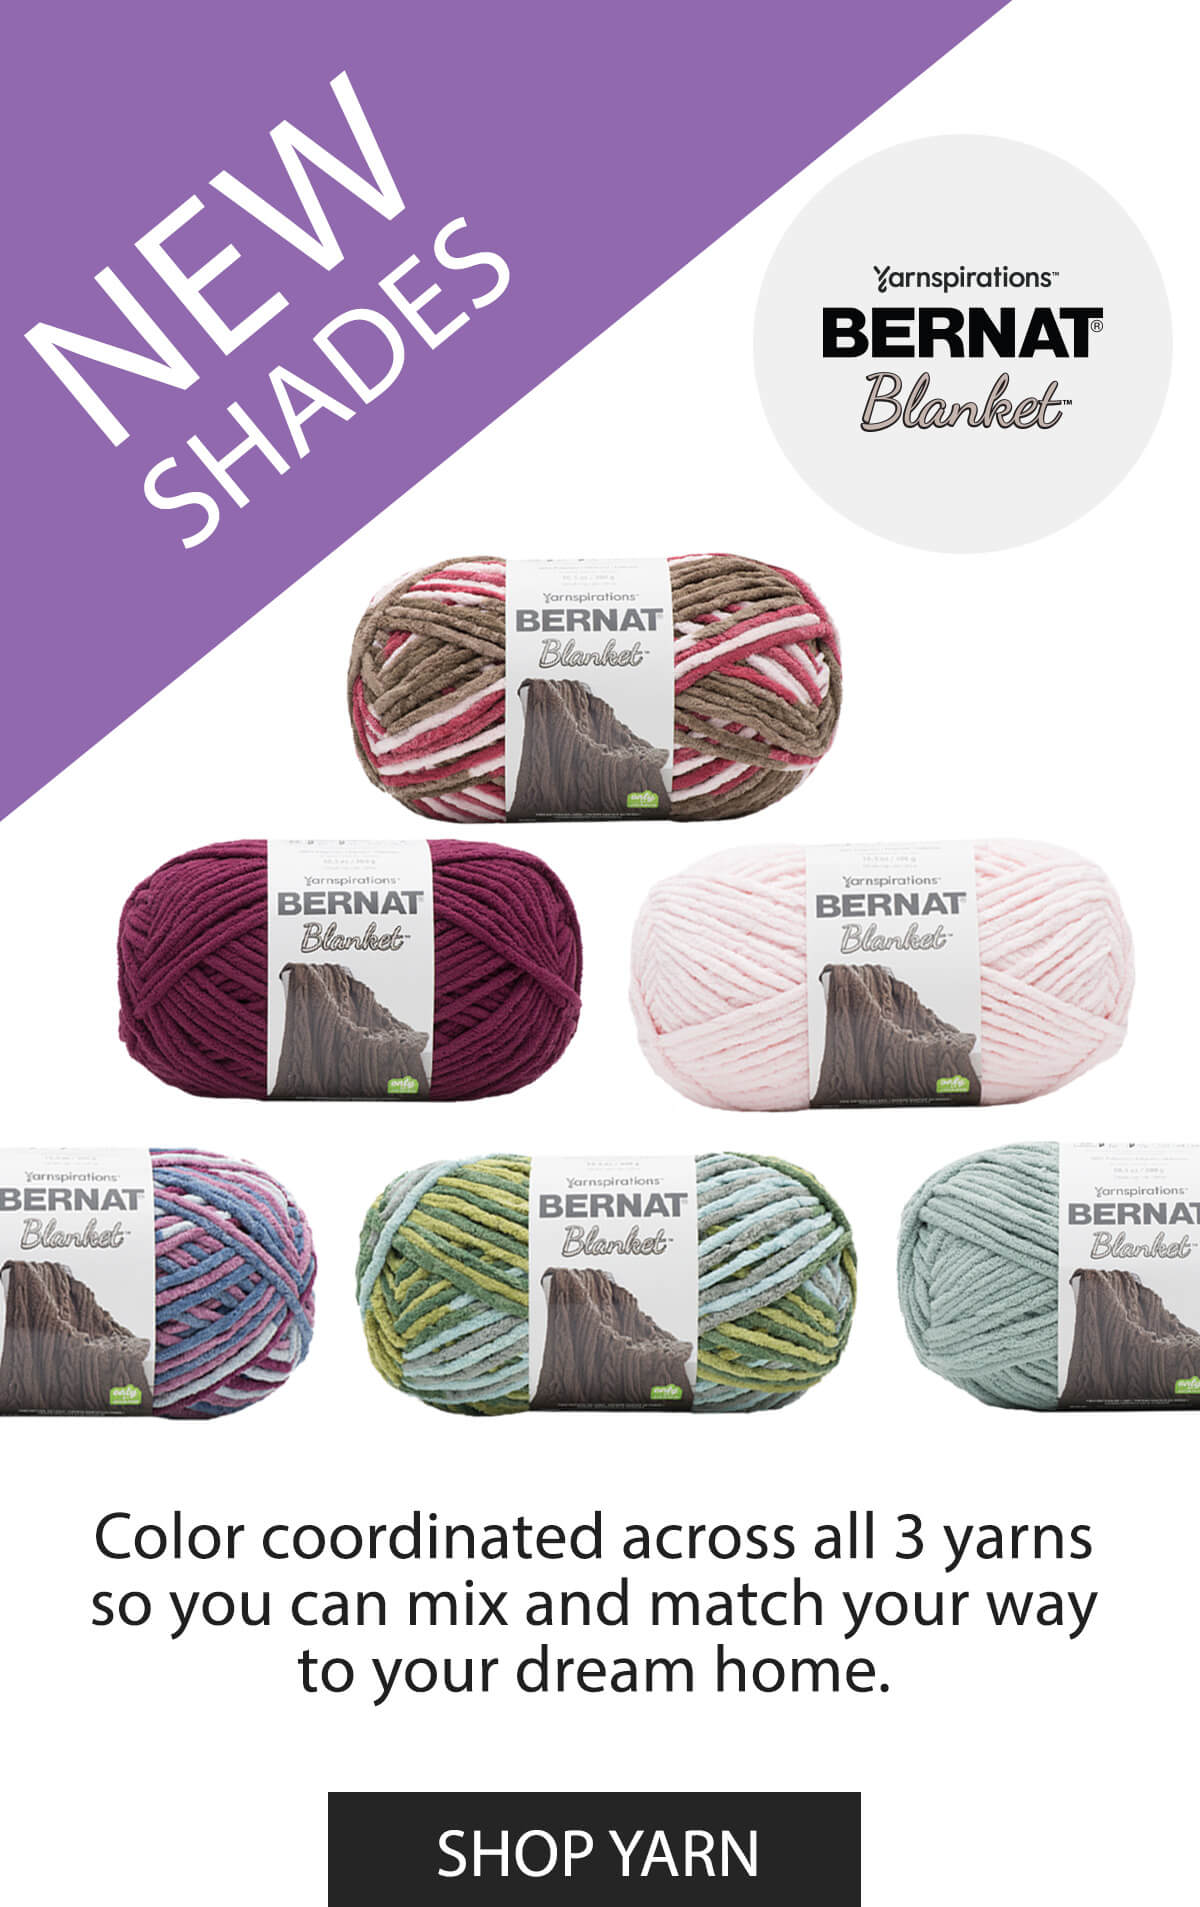 New Shades Bernat Blanket. Color coordinated across all 3 yarns so you can mix and match your way to your dream home. SHOP YARN.